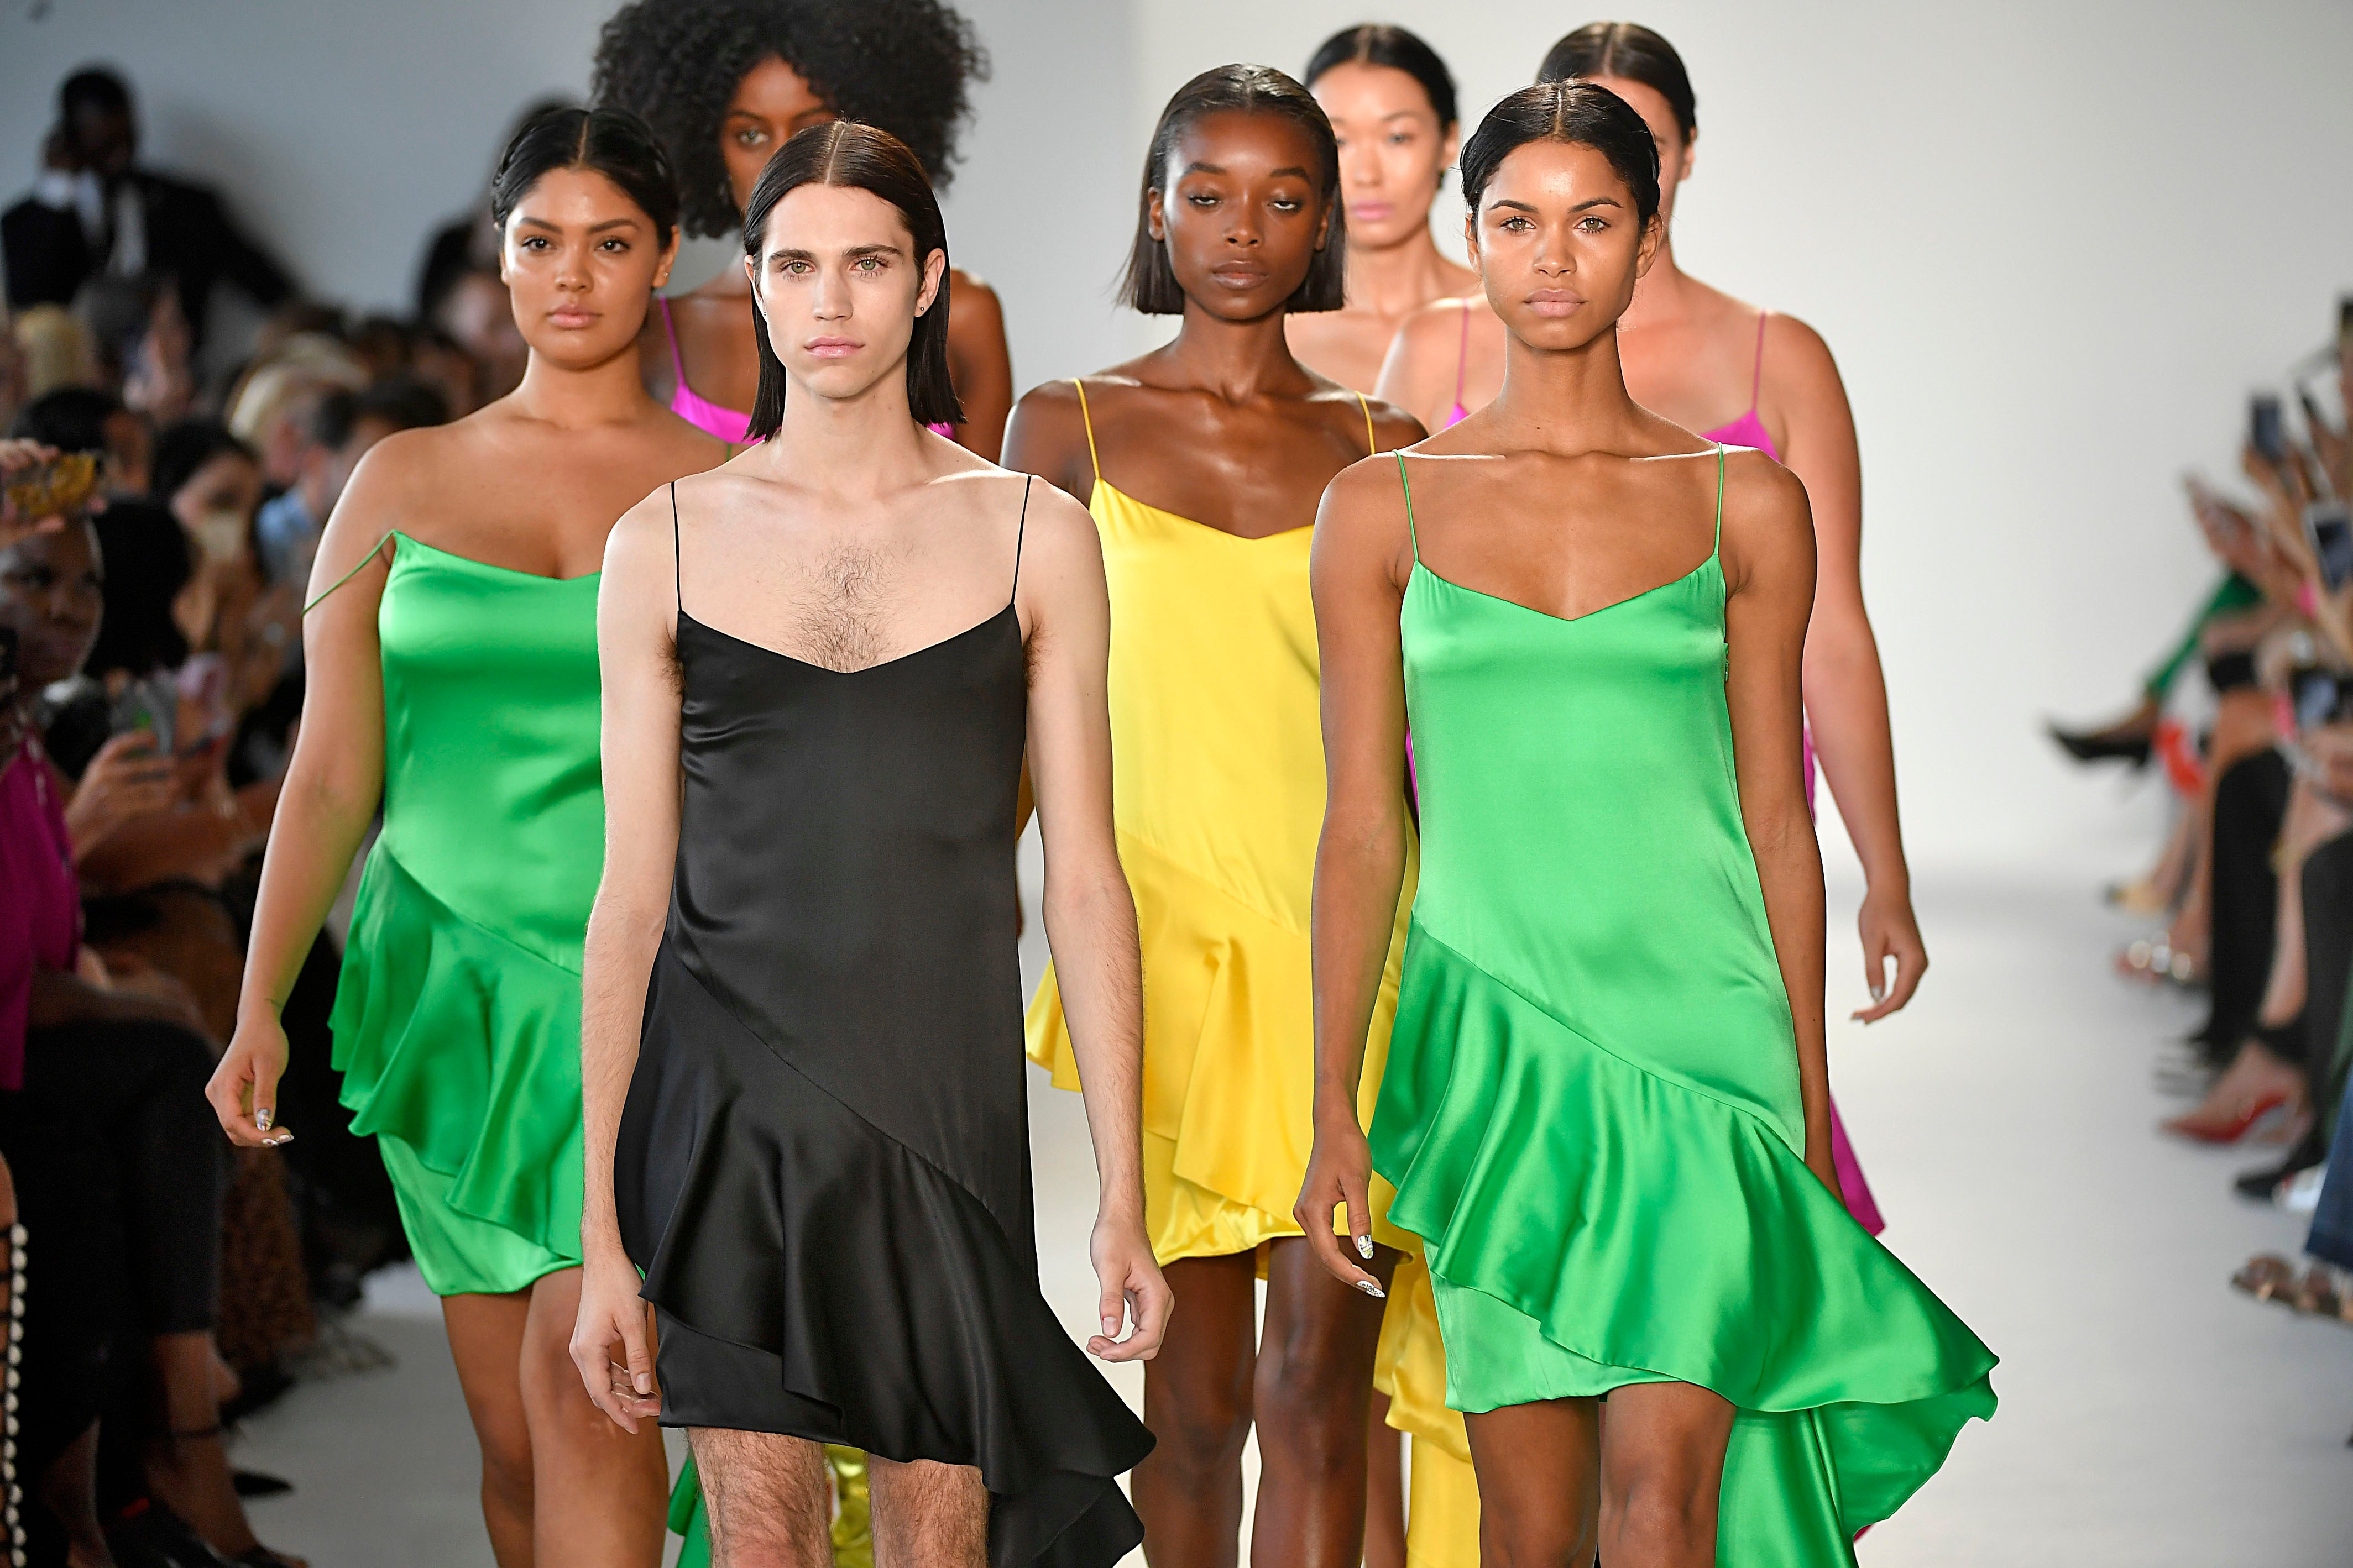 Christian Siriano Celebrates Curvy Bodies and Diversity At His New York Fashion Week Show